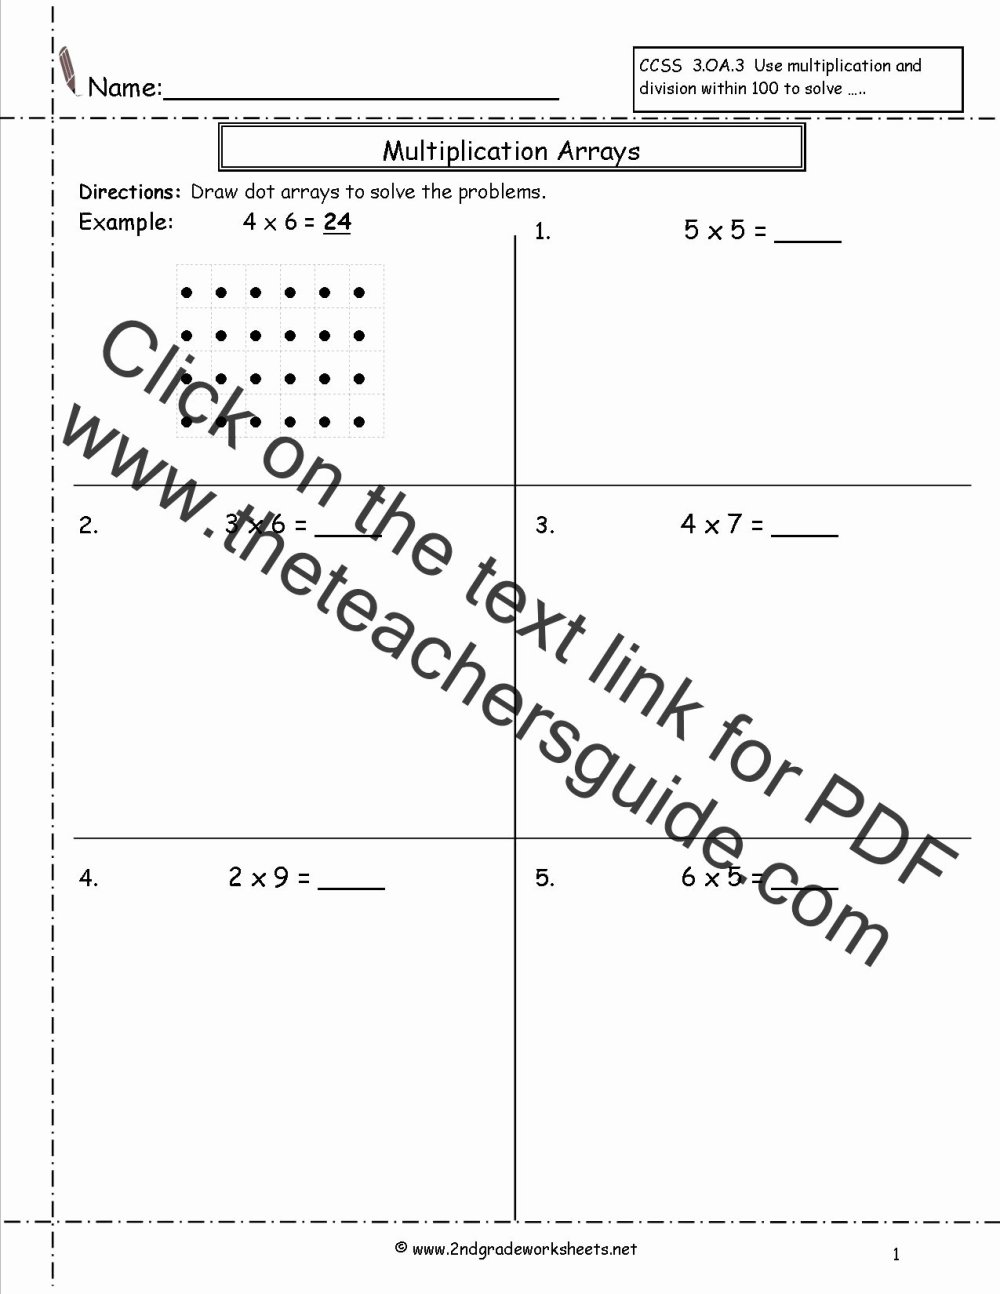 medium resolution of Area Model Multiplication Worksheets Awesome area Model Multiplication  Worksheets Pdf In 2020 – Printable Math Worksheets